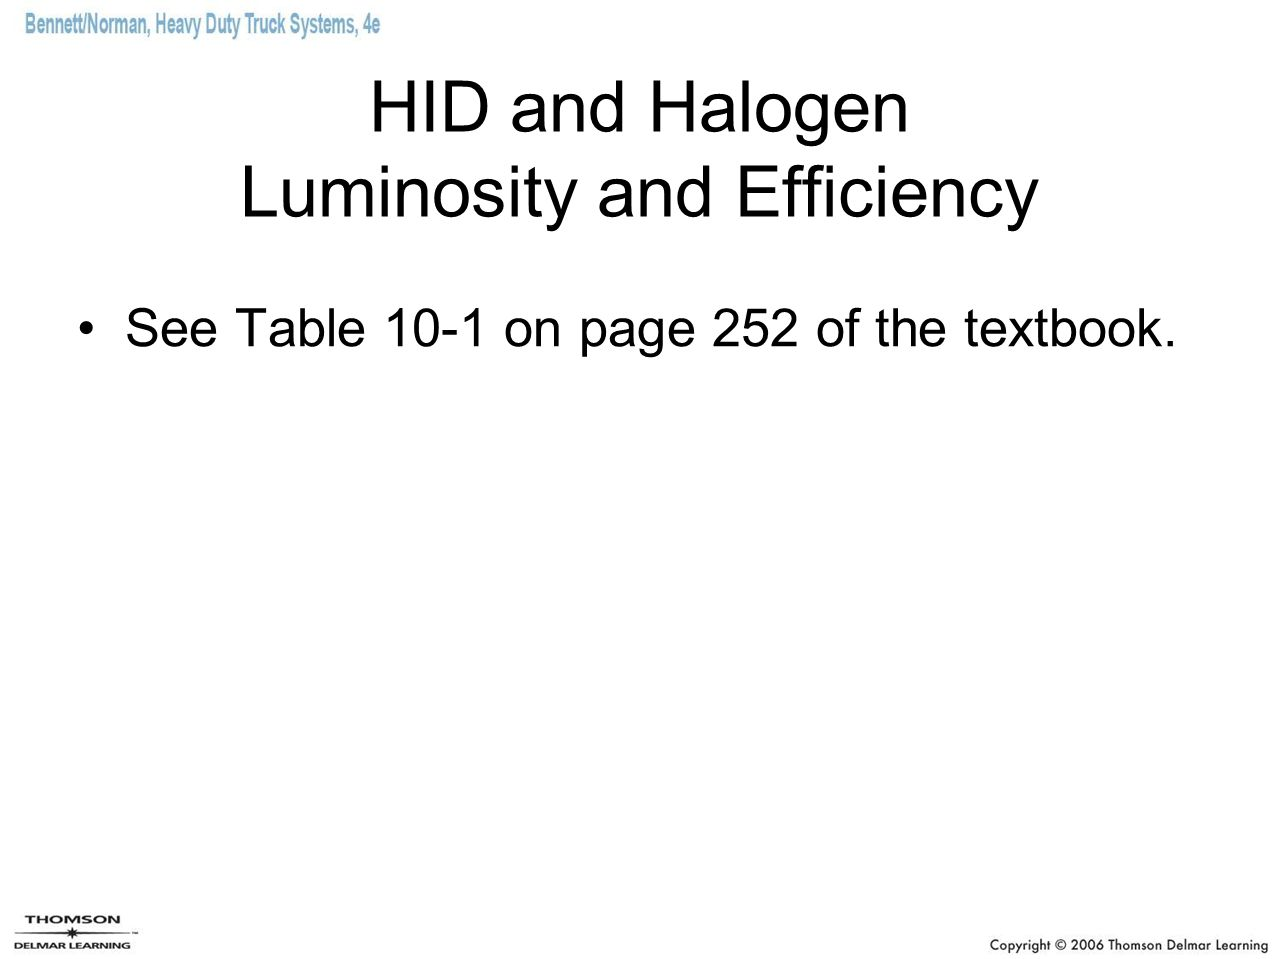 HID and Halogen Luminosity and Efficiency See Table 10-1 on page 252 of the textbook.